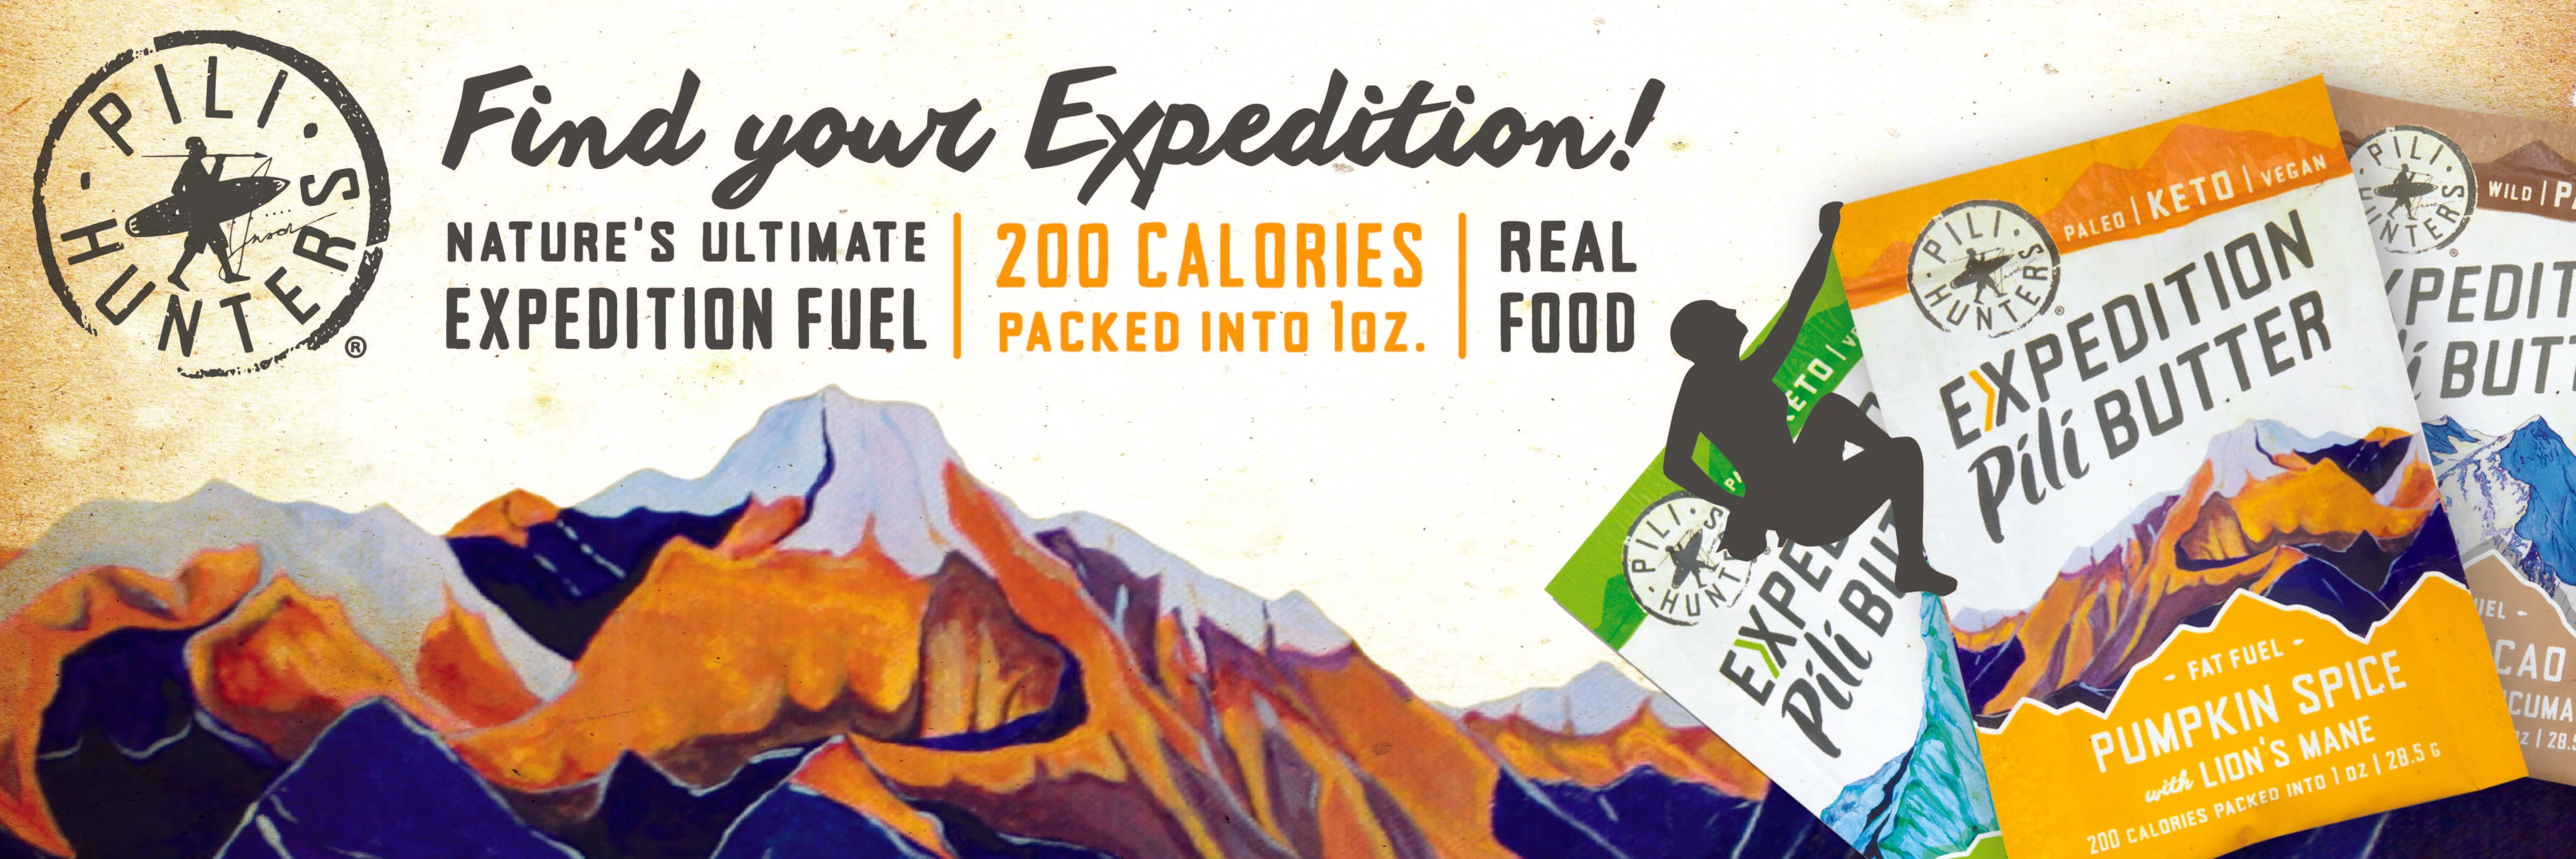 expedition keto pili butter banner